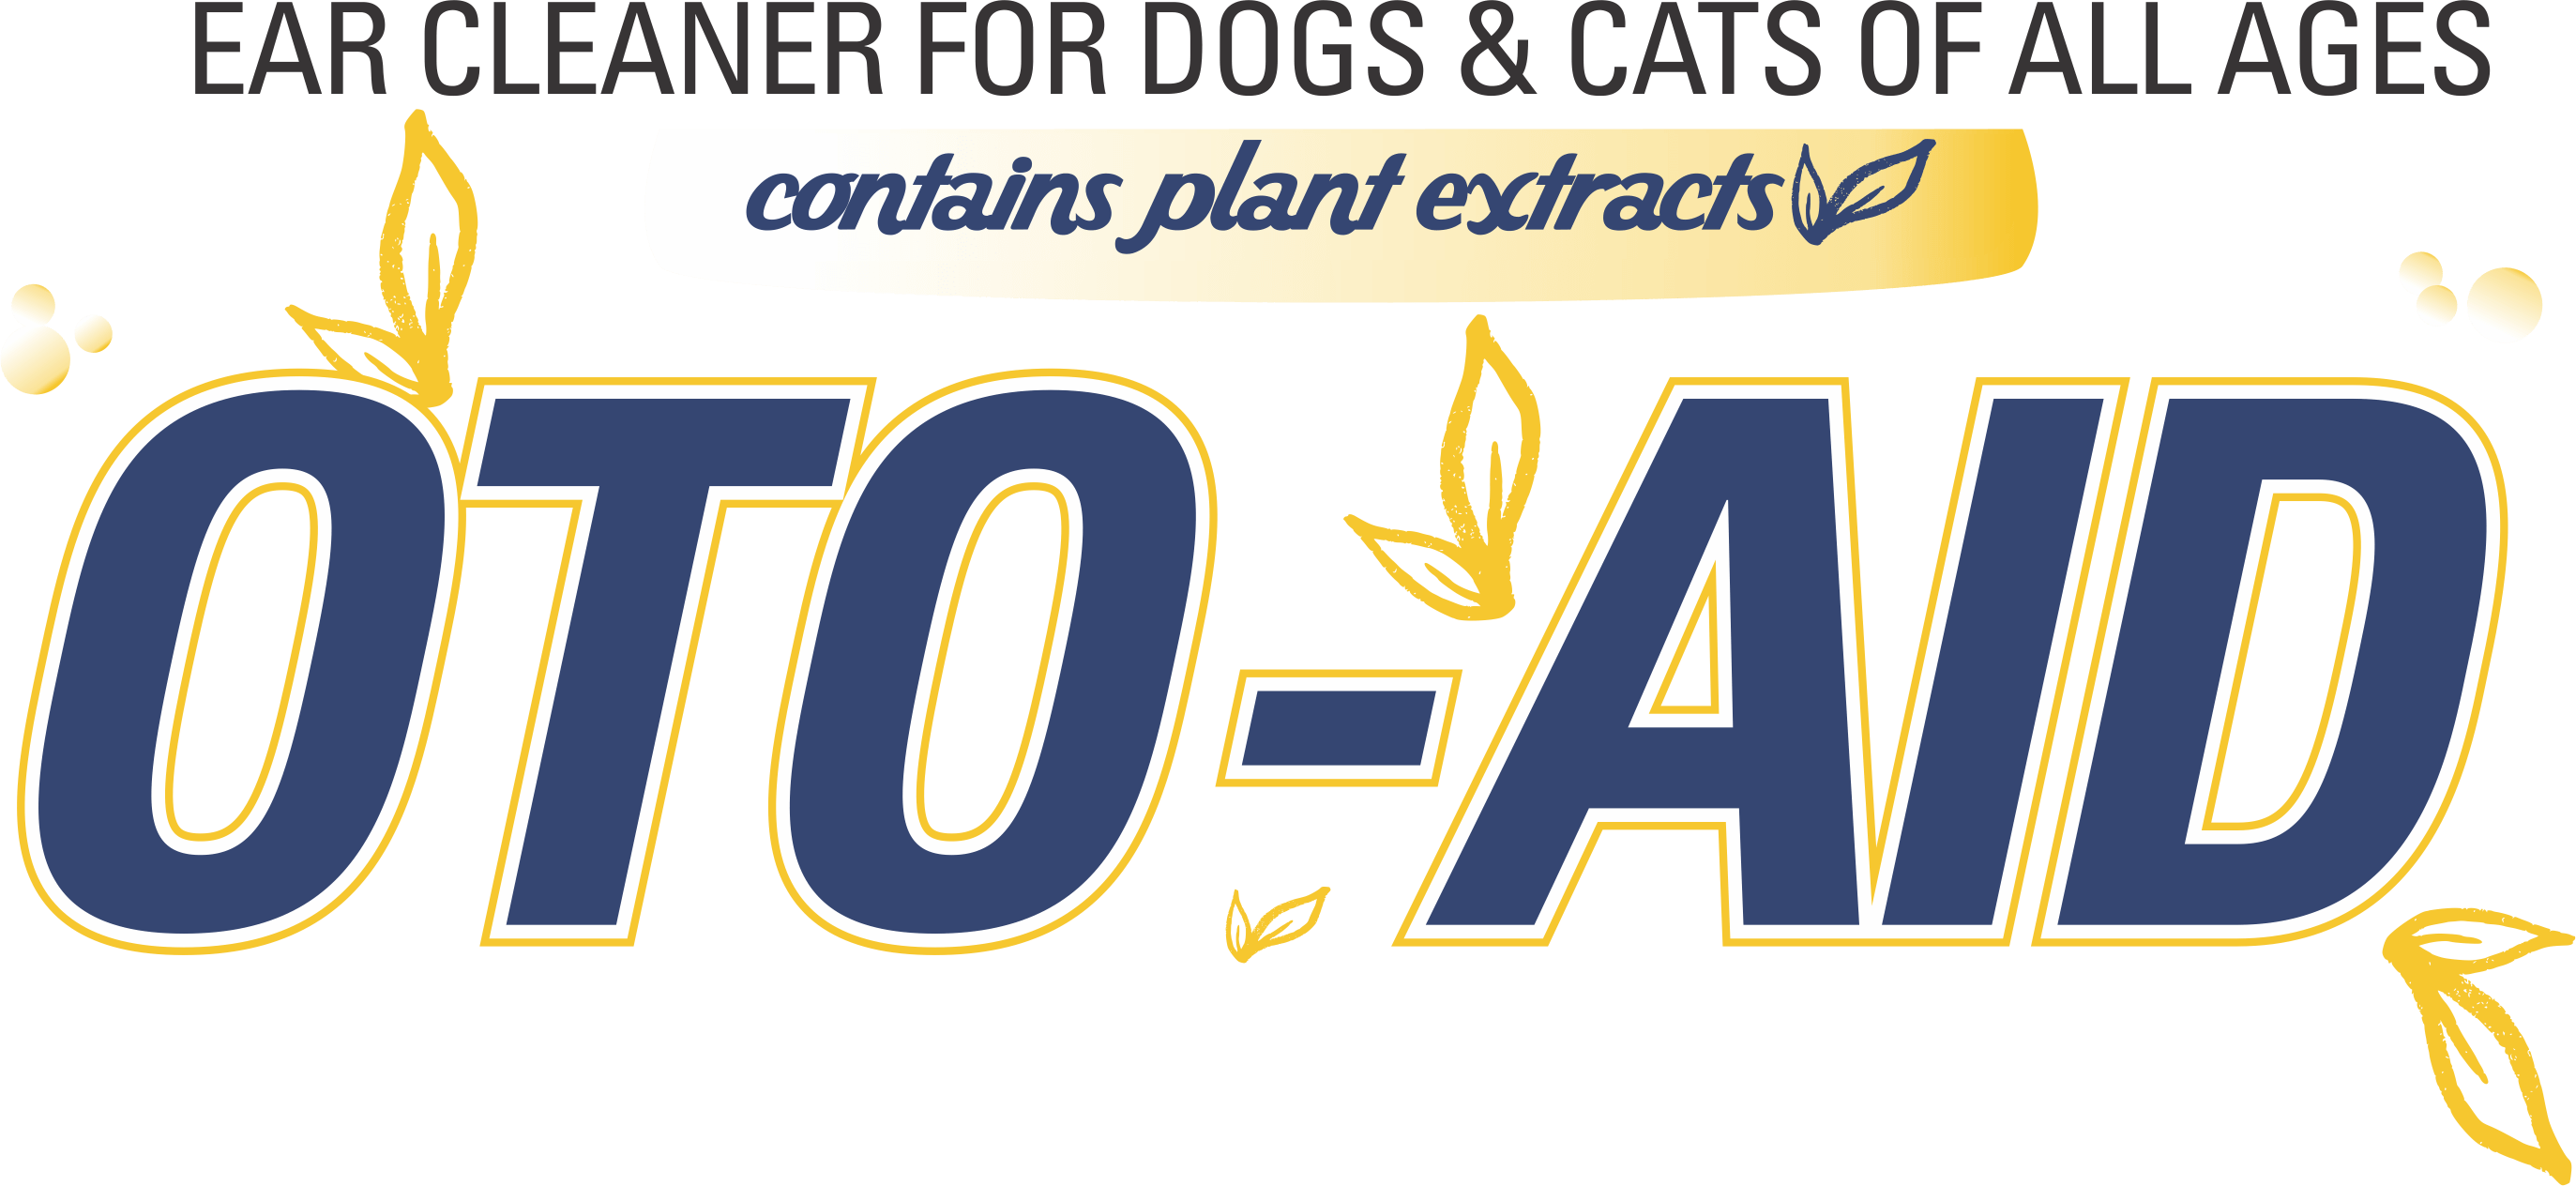 Oto aid for pets